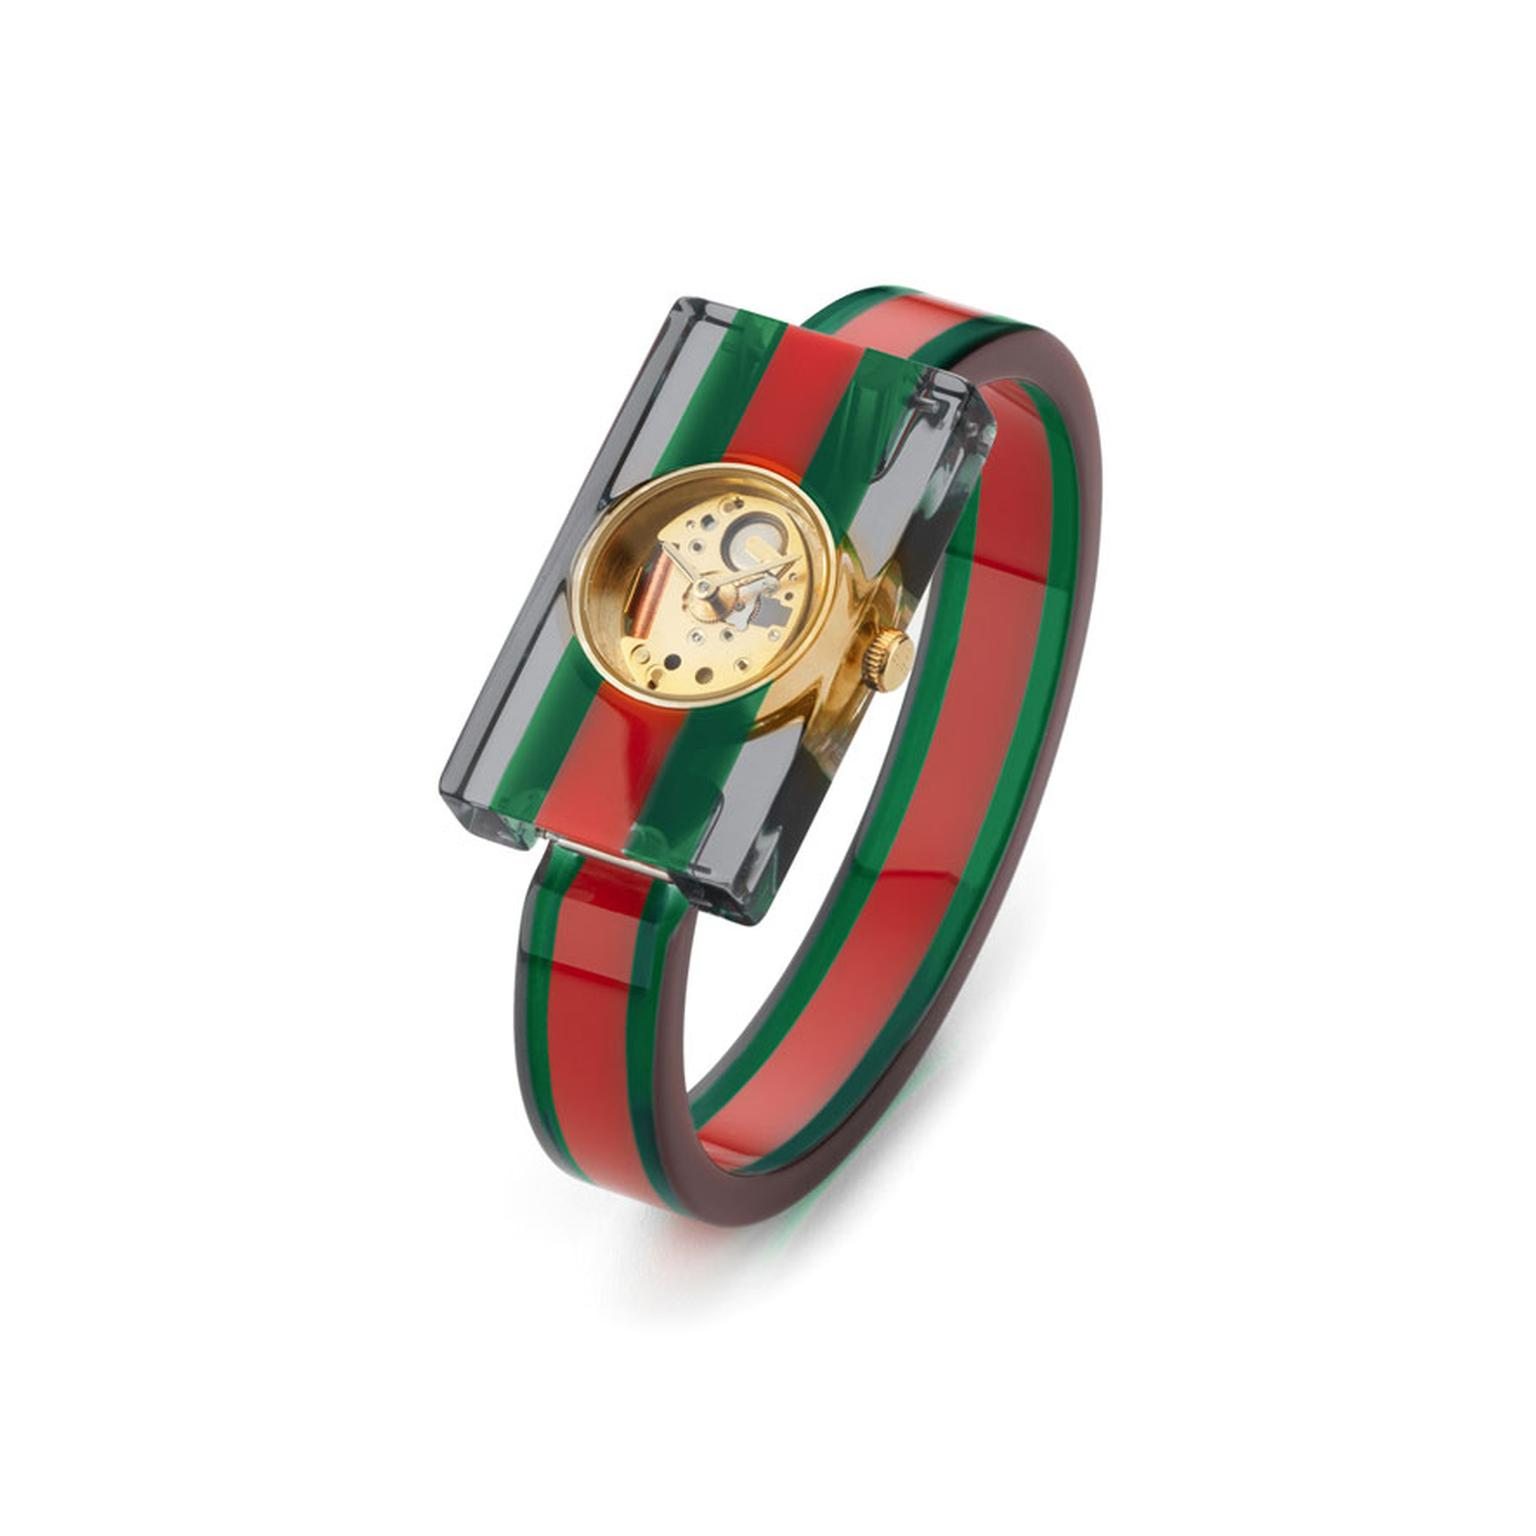 Gucci Green Red Green watch with Plexiglas